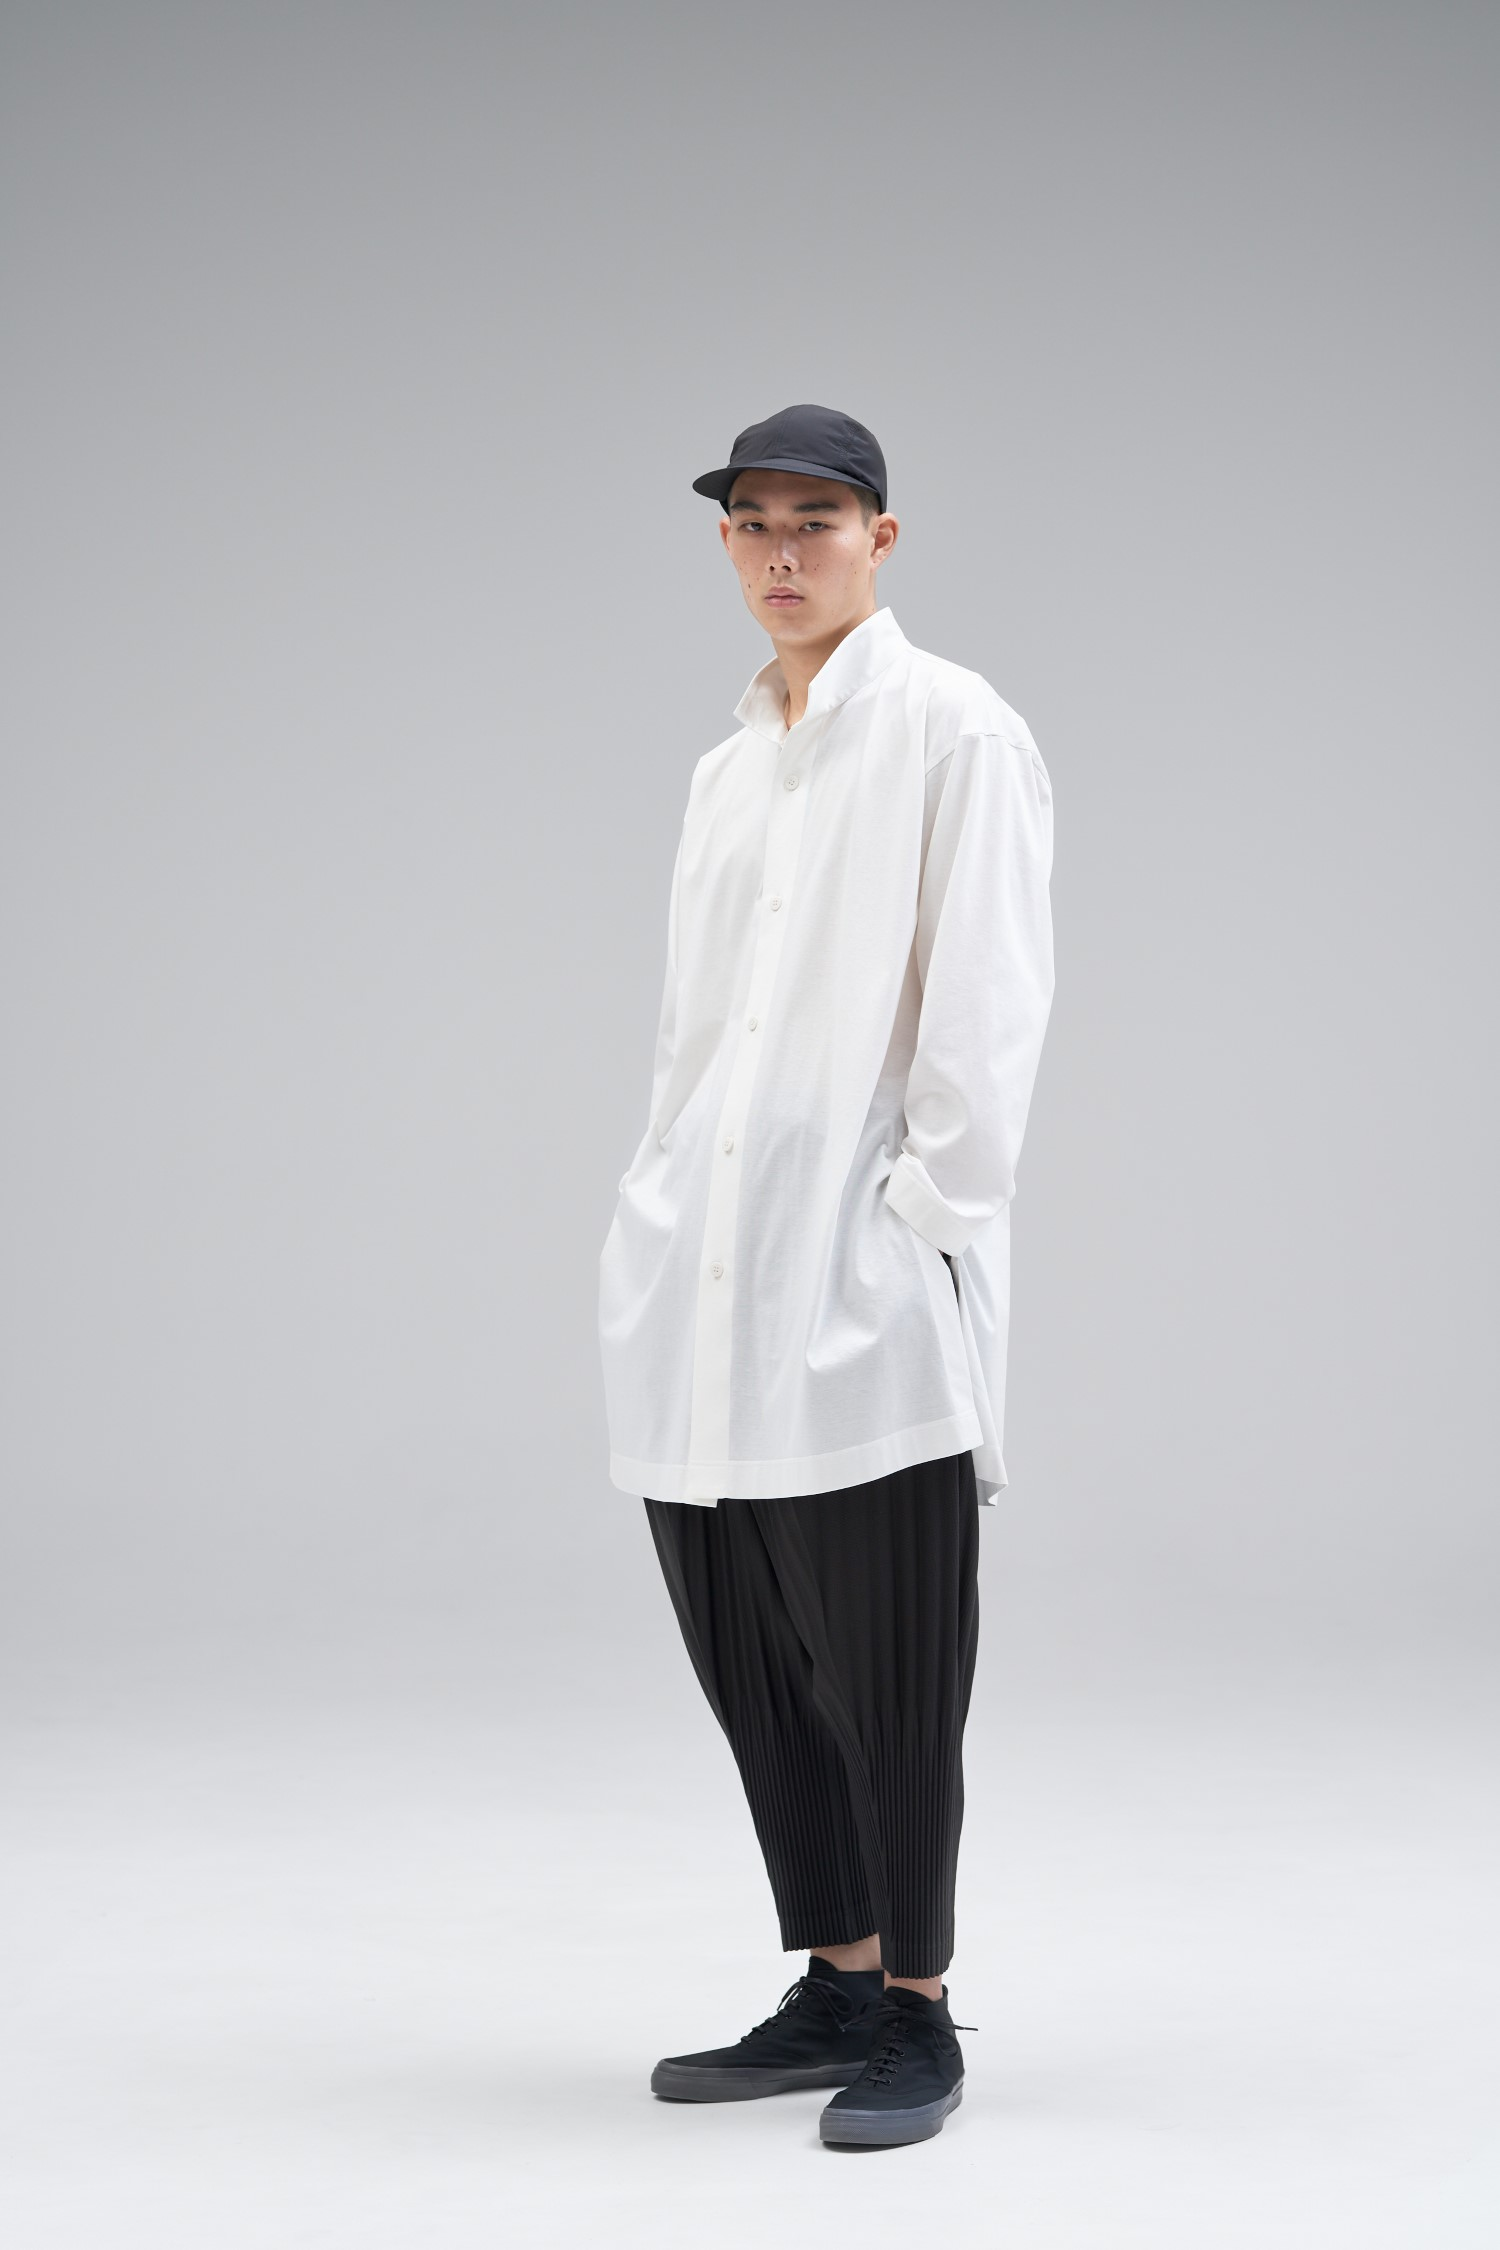 HOMME PLISSÉ ISSEY MIYAKE Fall Winter 2021 - Paris Fashion Week Men's